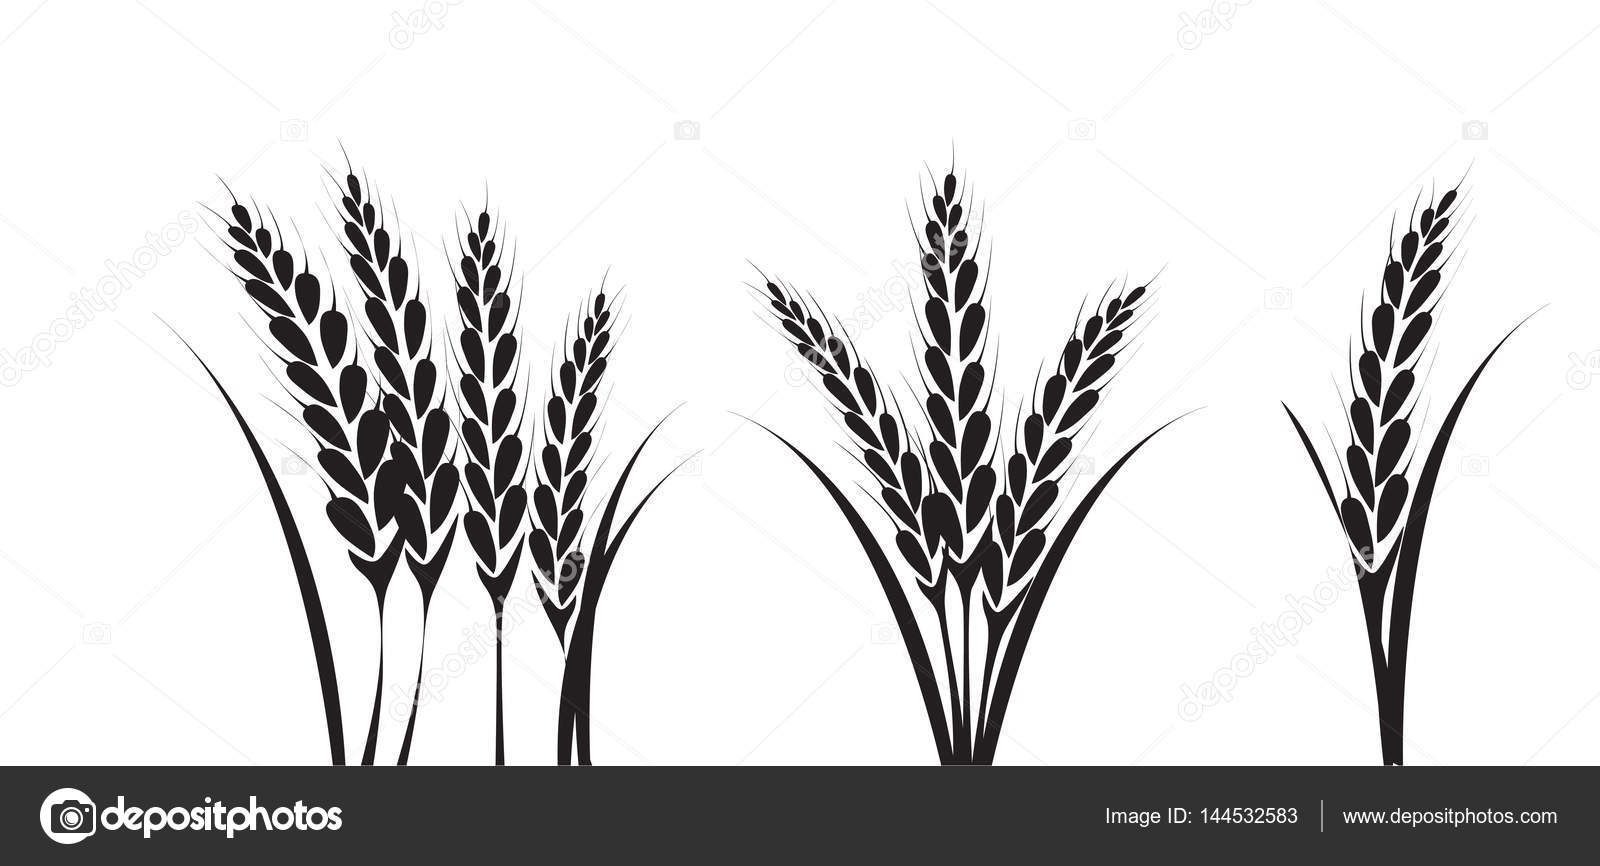 corn or wheat silhouette drawings — Stock Vector ...